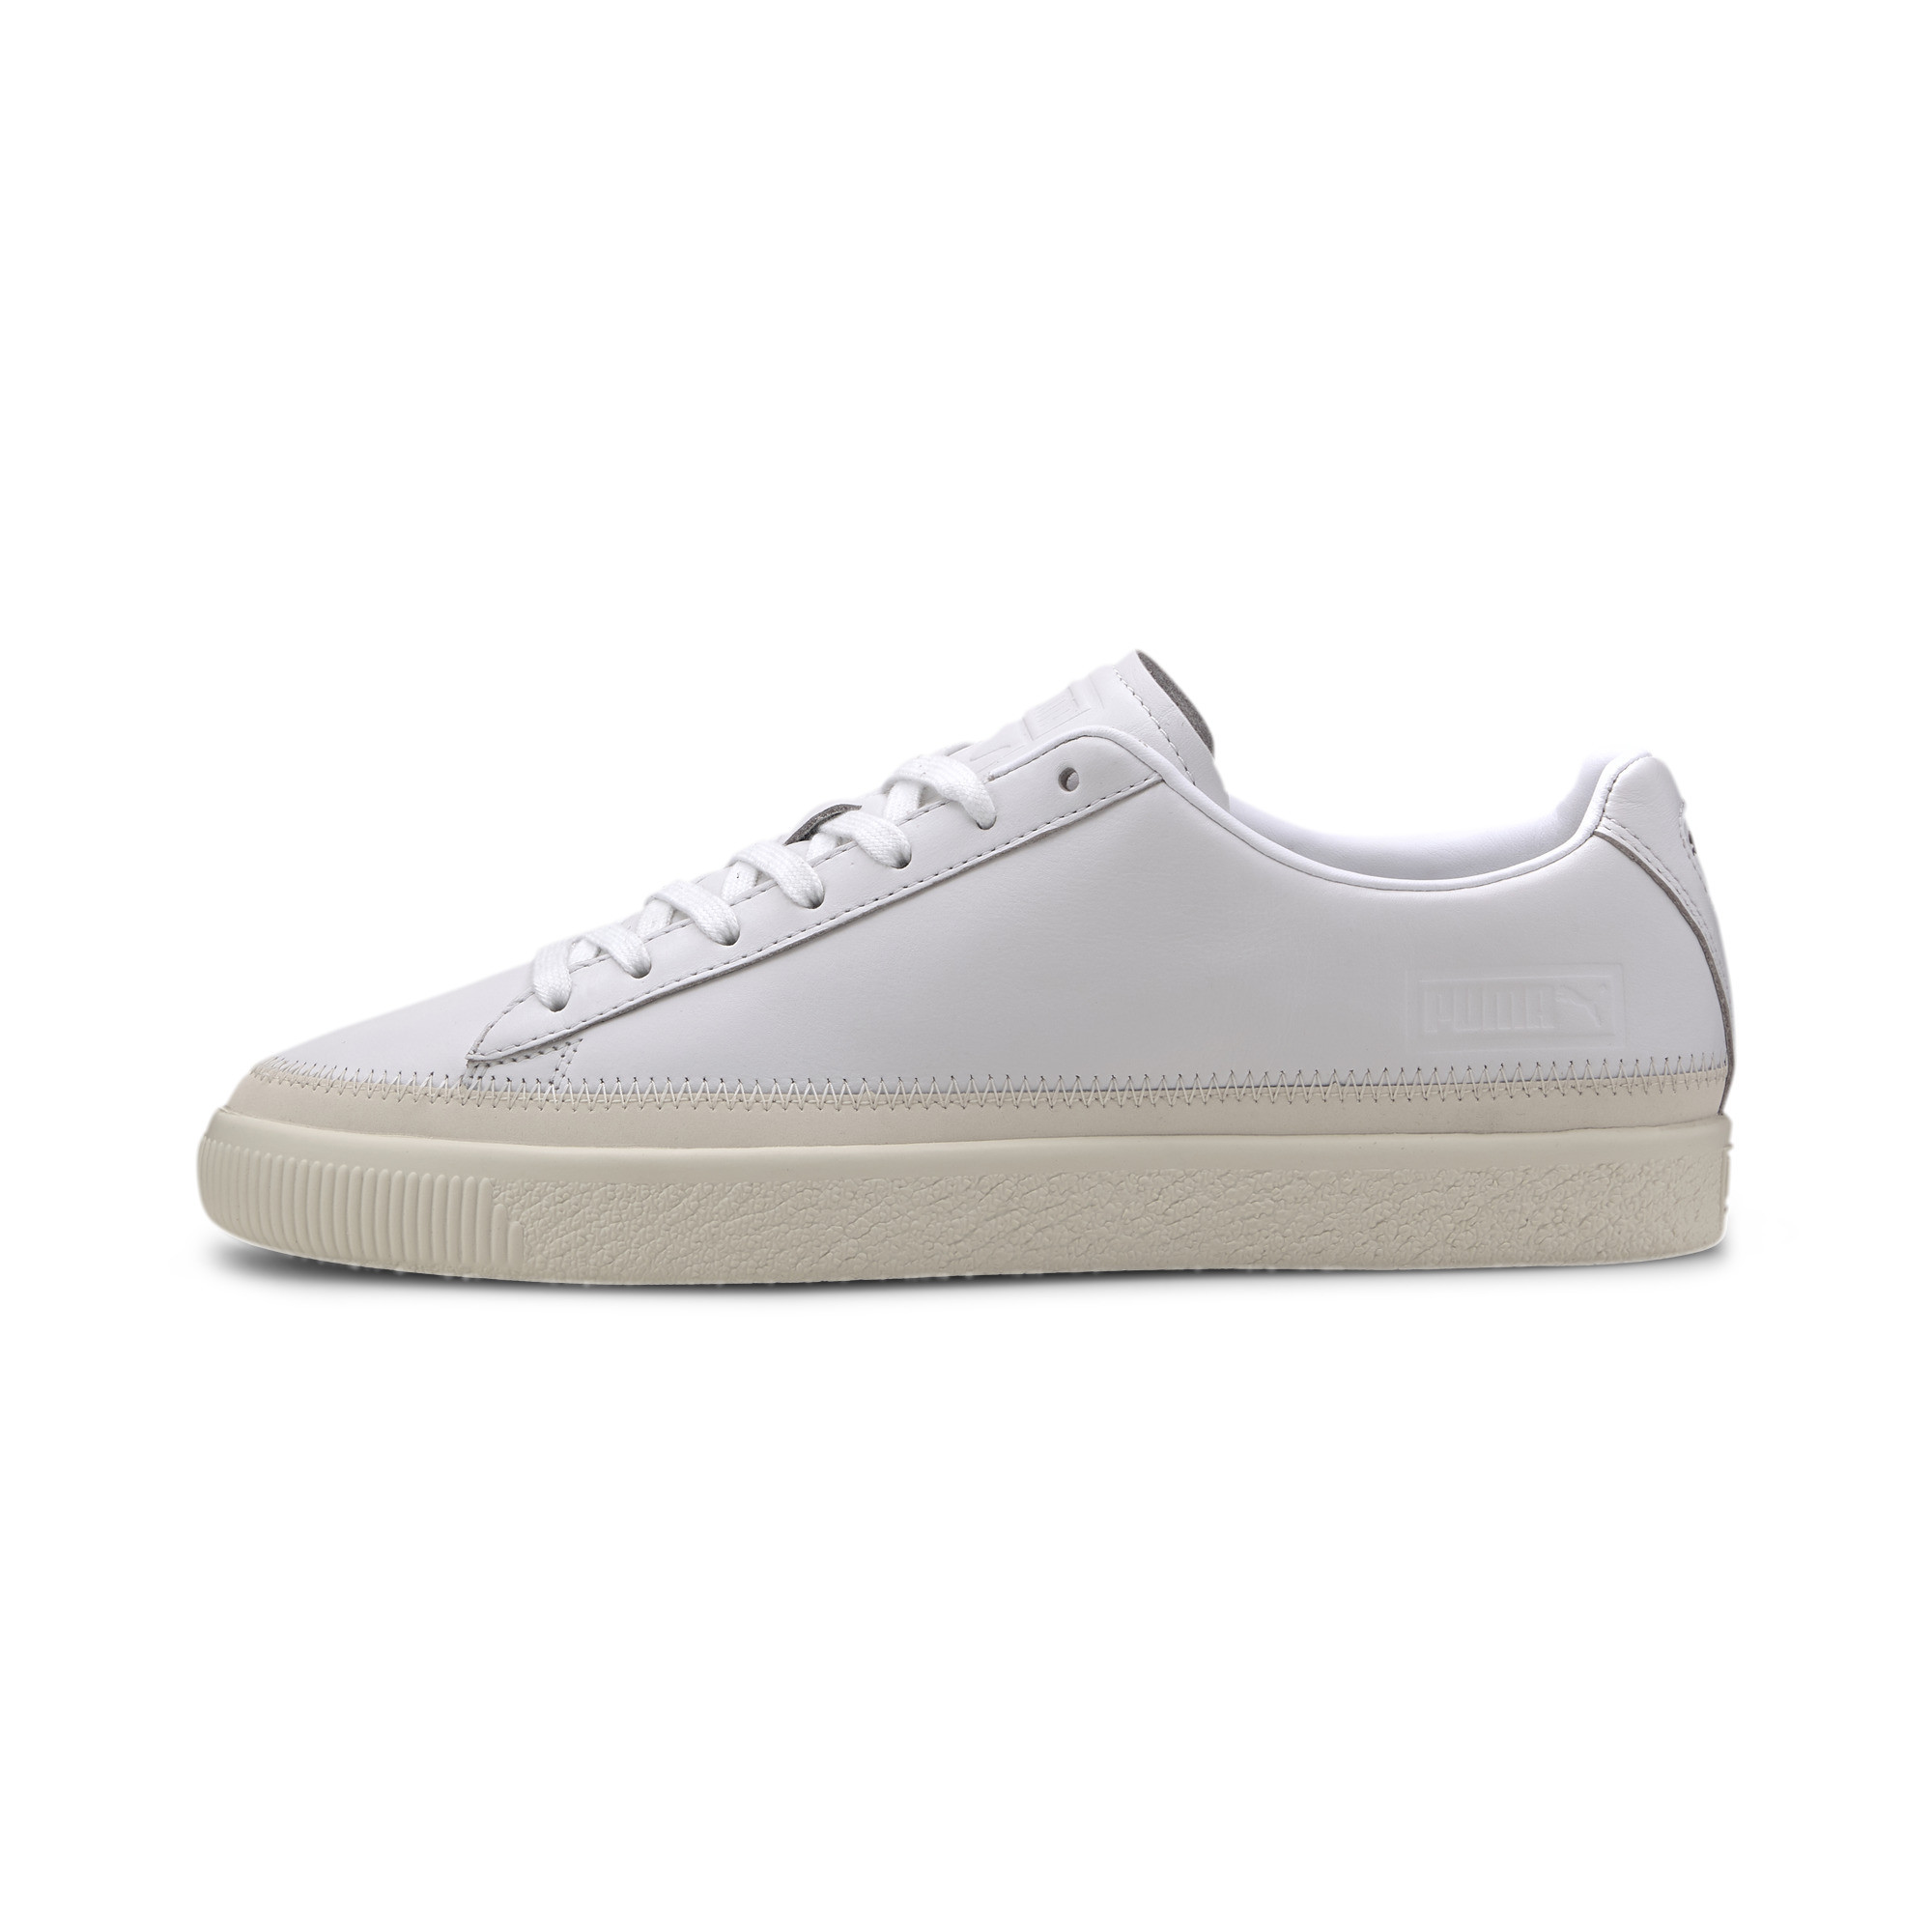 PUMA-Men-039-s-Basket-Trim-PRM-Sneakers thumbnail 18